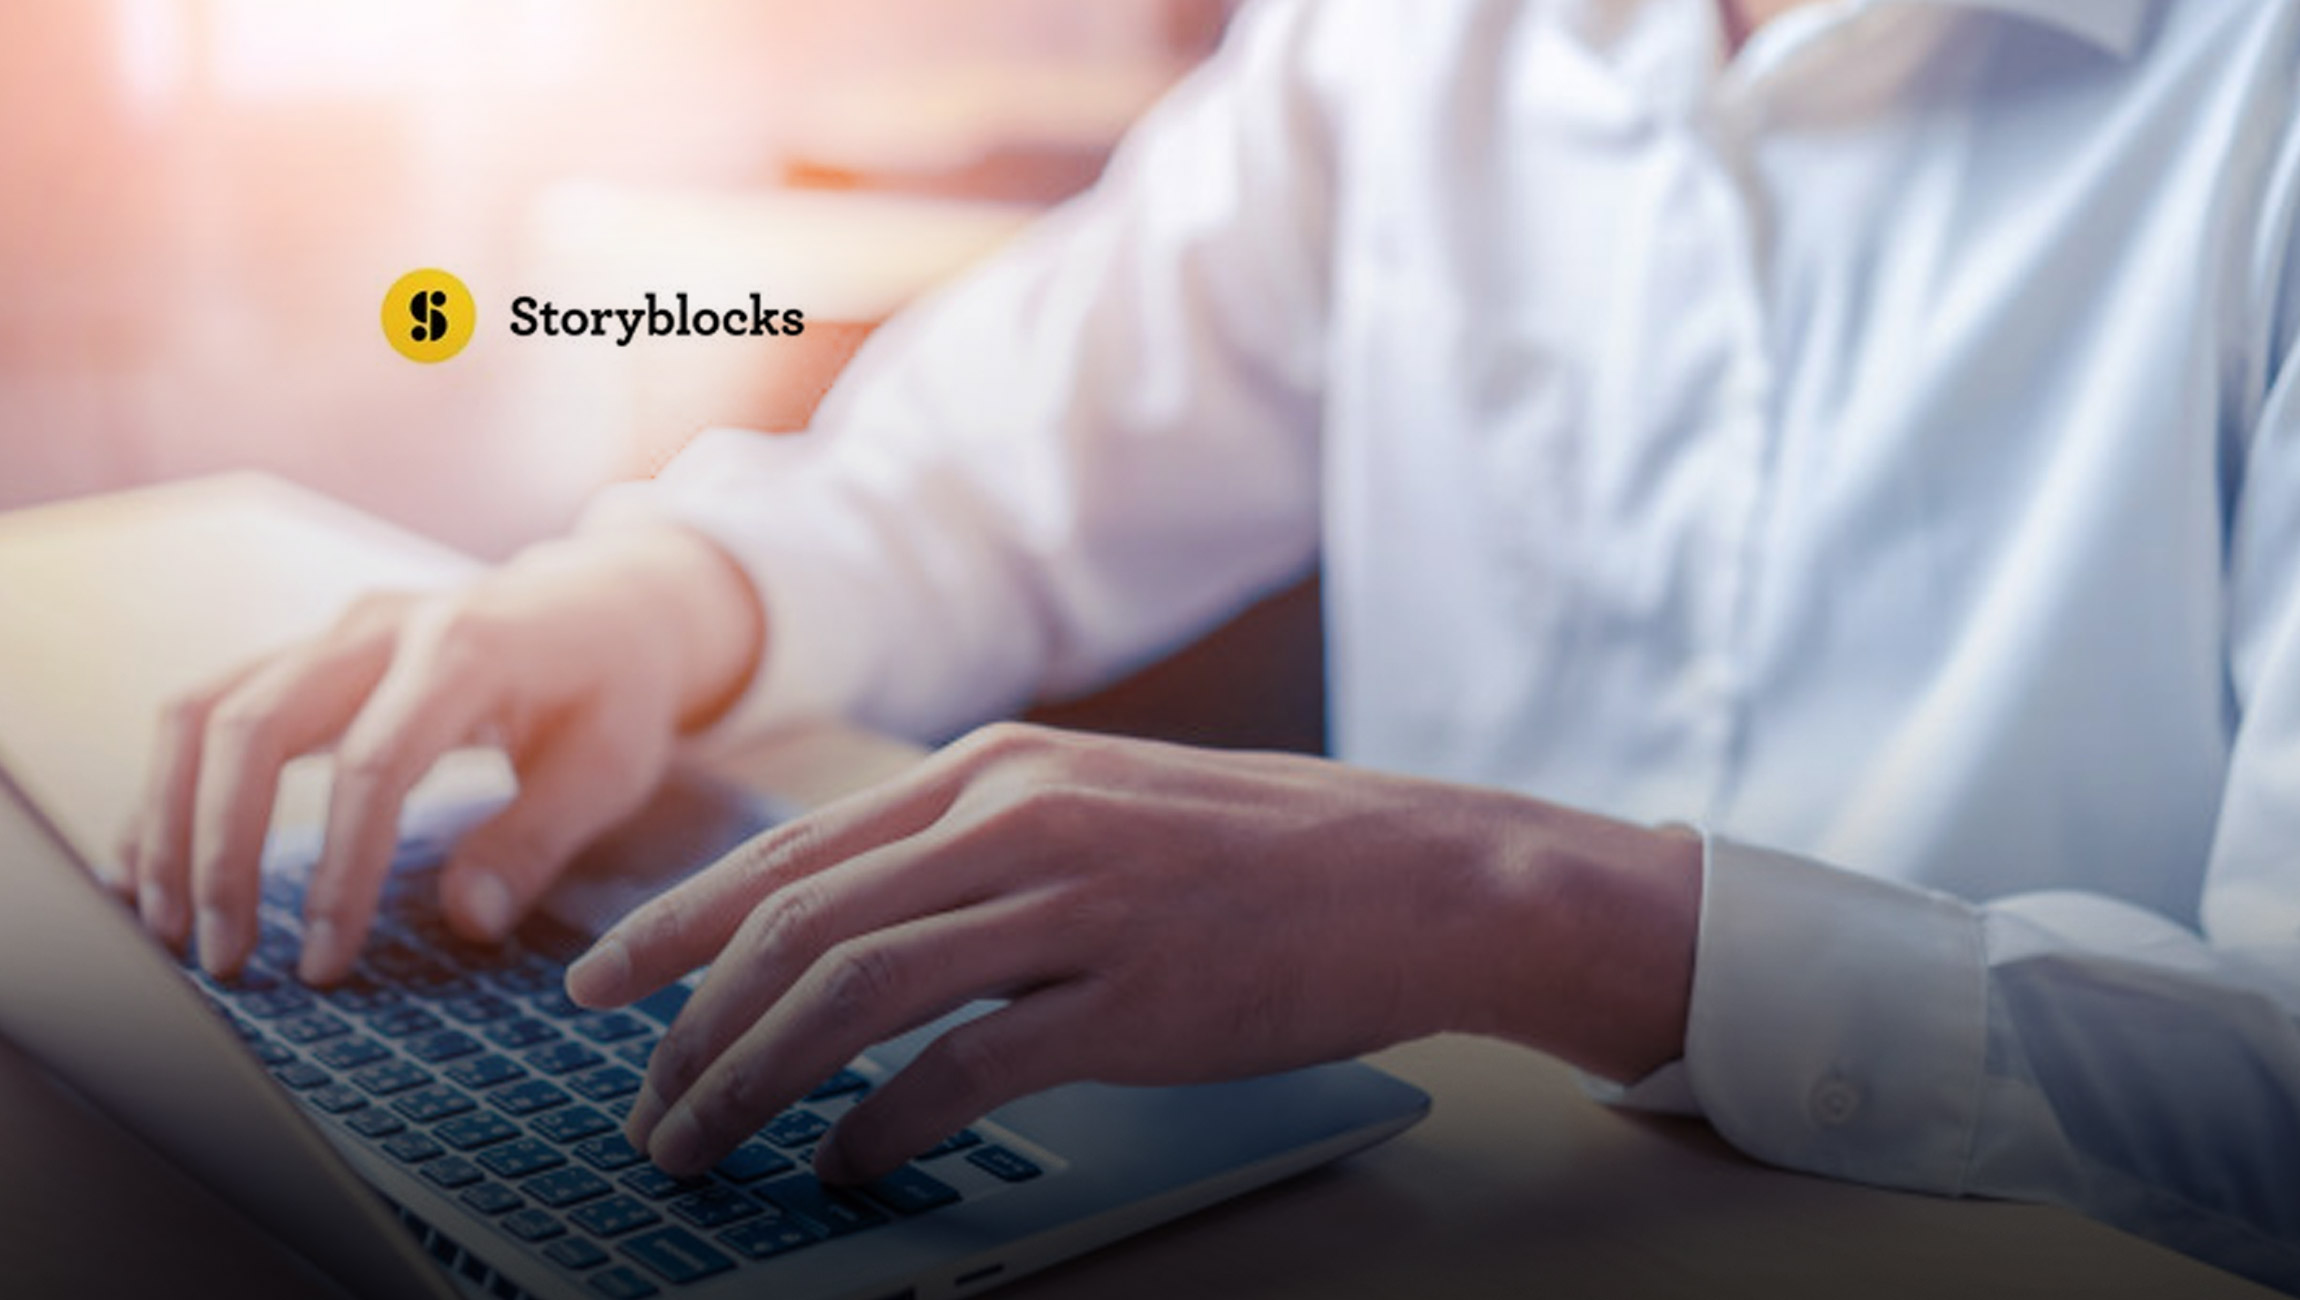 Storyblocks Announces Acquisition By Great Hill Partners As Company Reshapes Creative Process in Digital Media Ecosystem